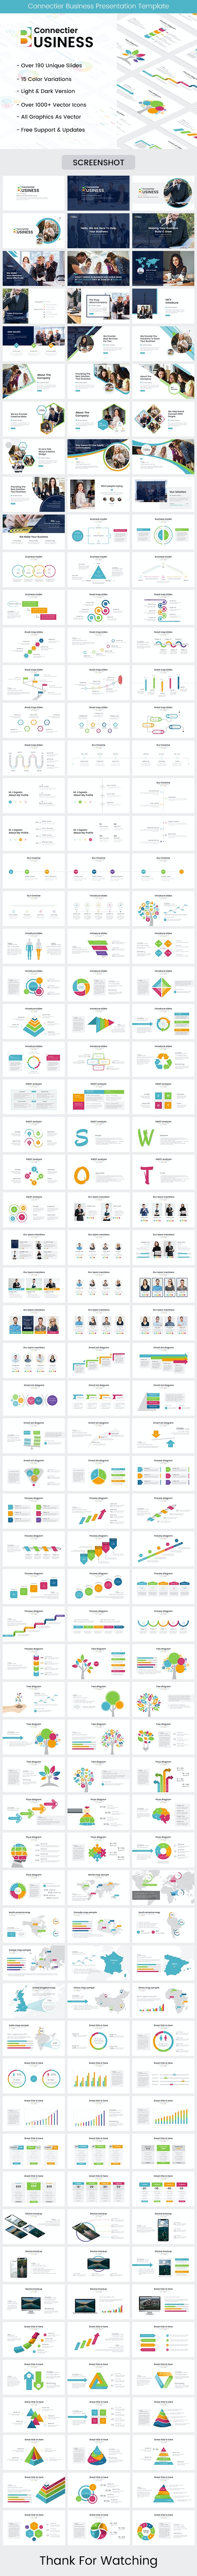 Connectier Business Keynote Template 2019 - Business Keynote Templates